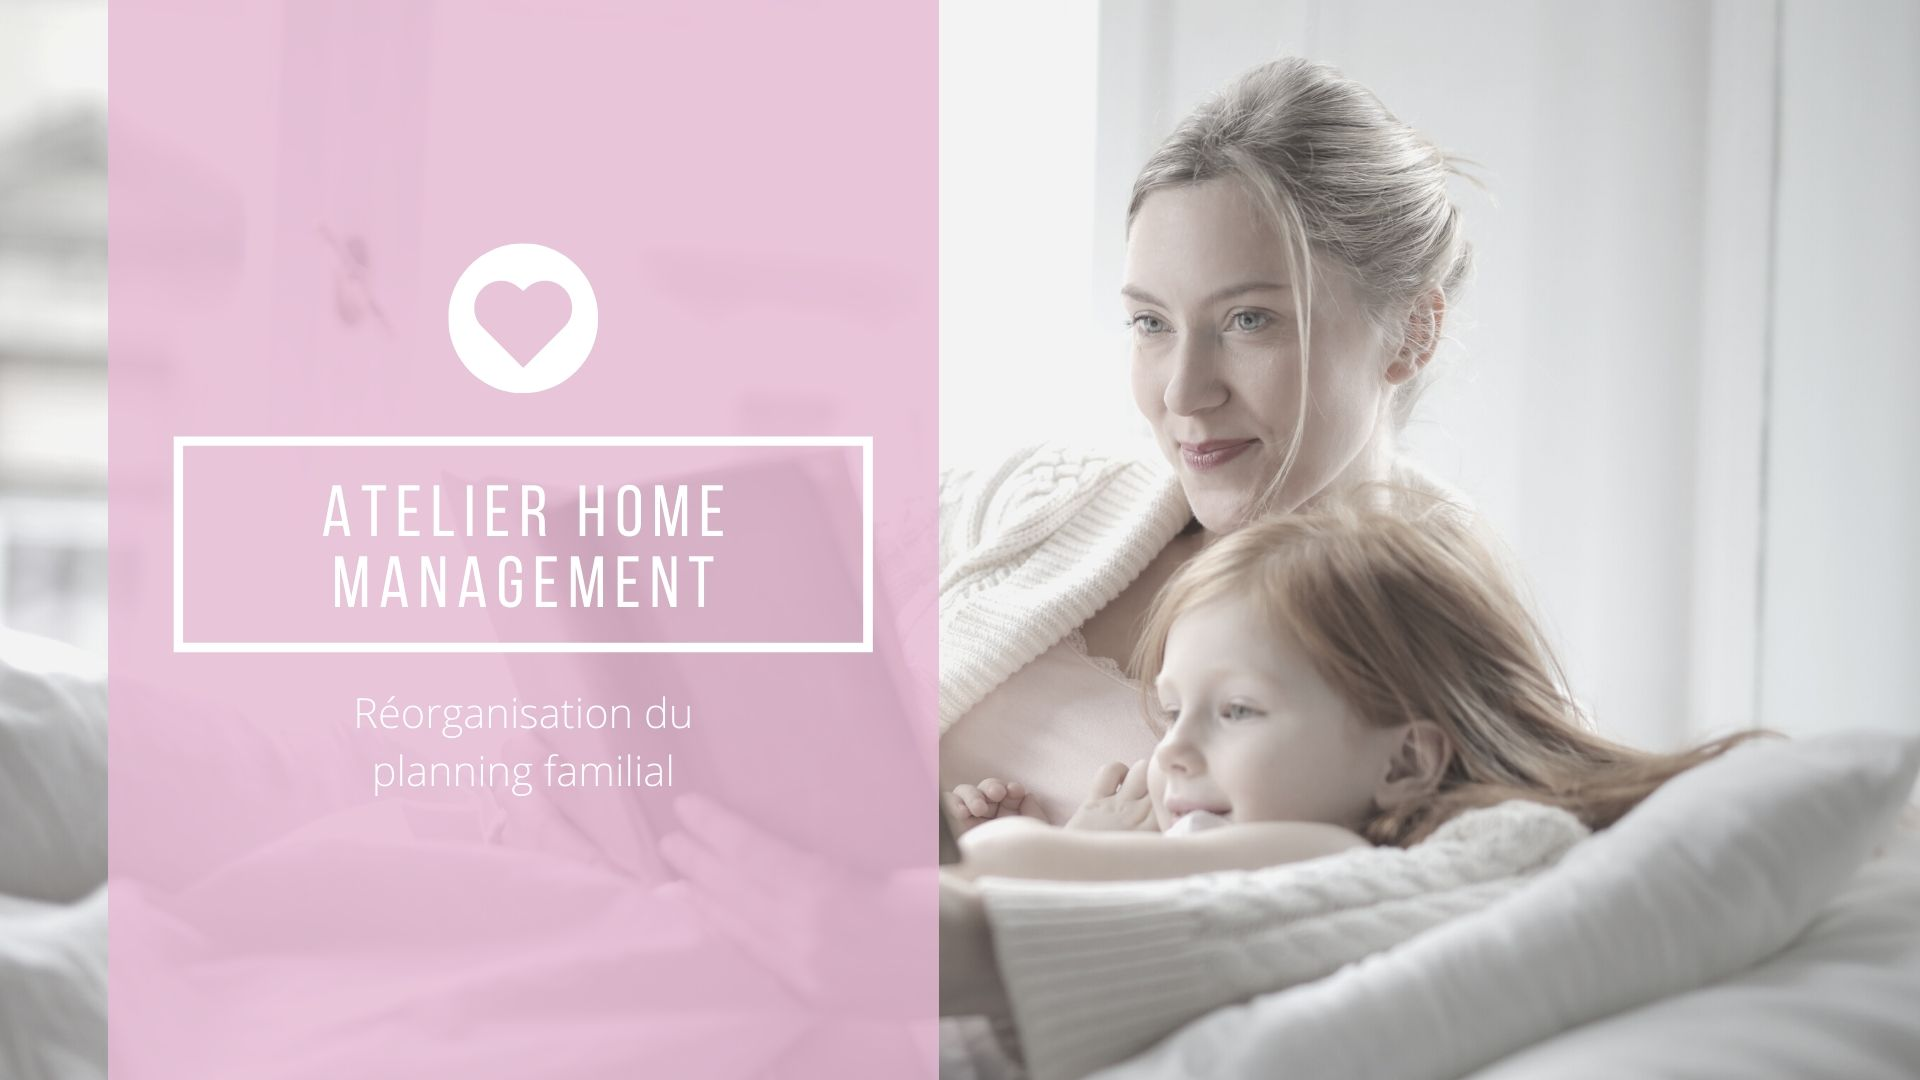 Atelier Home Management